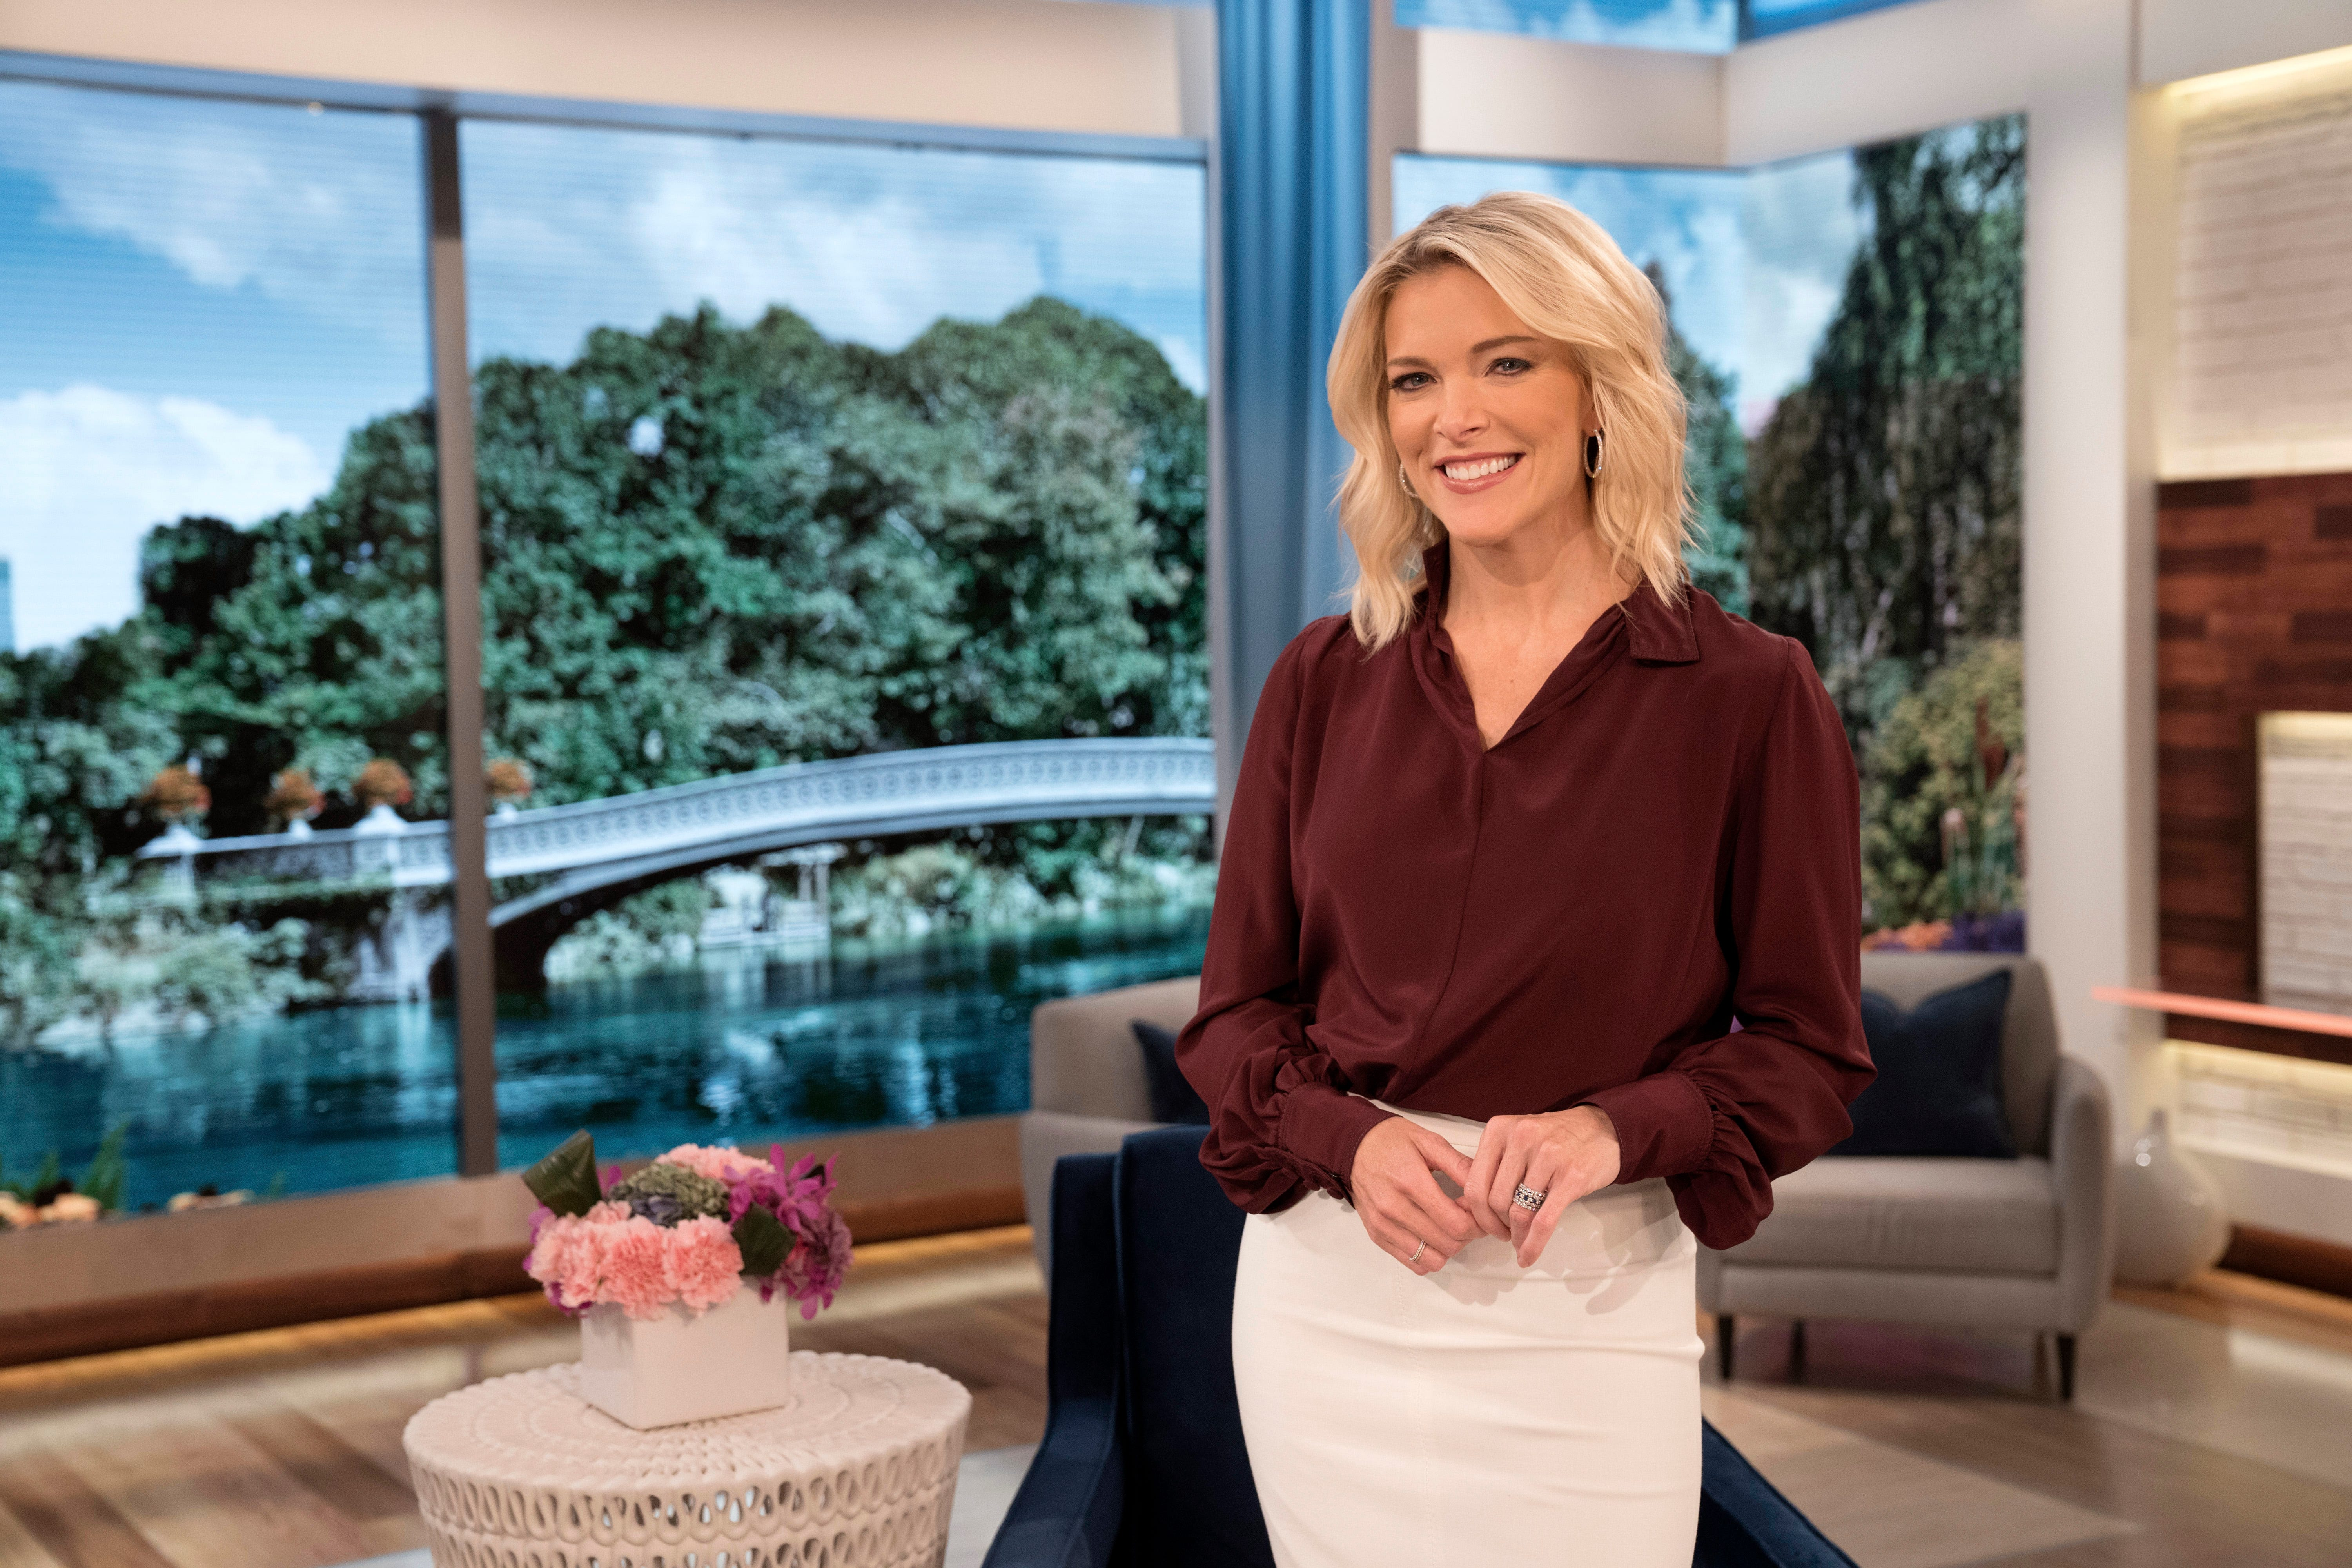 Review: Megyn Kelly tries to ditch politics for 'fun' on 'Today'